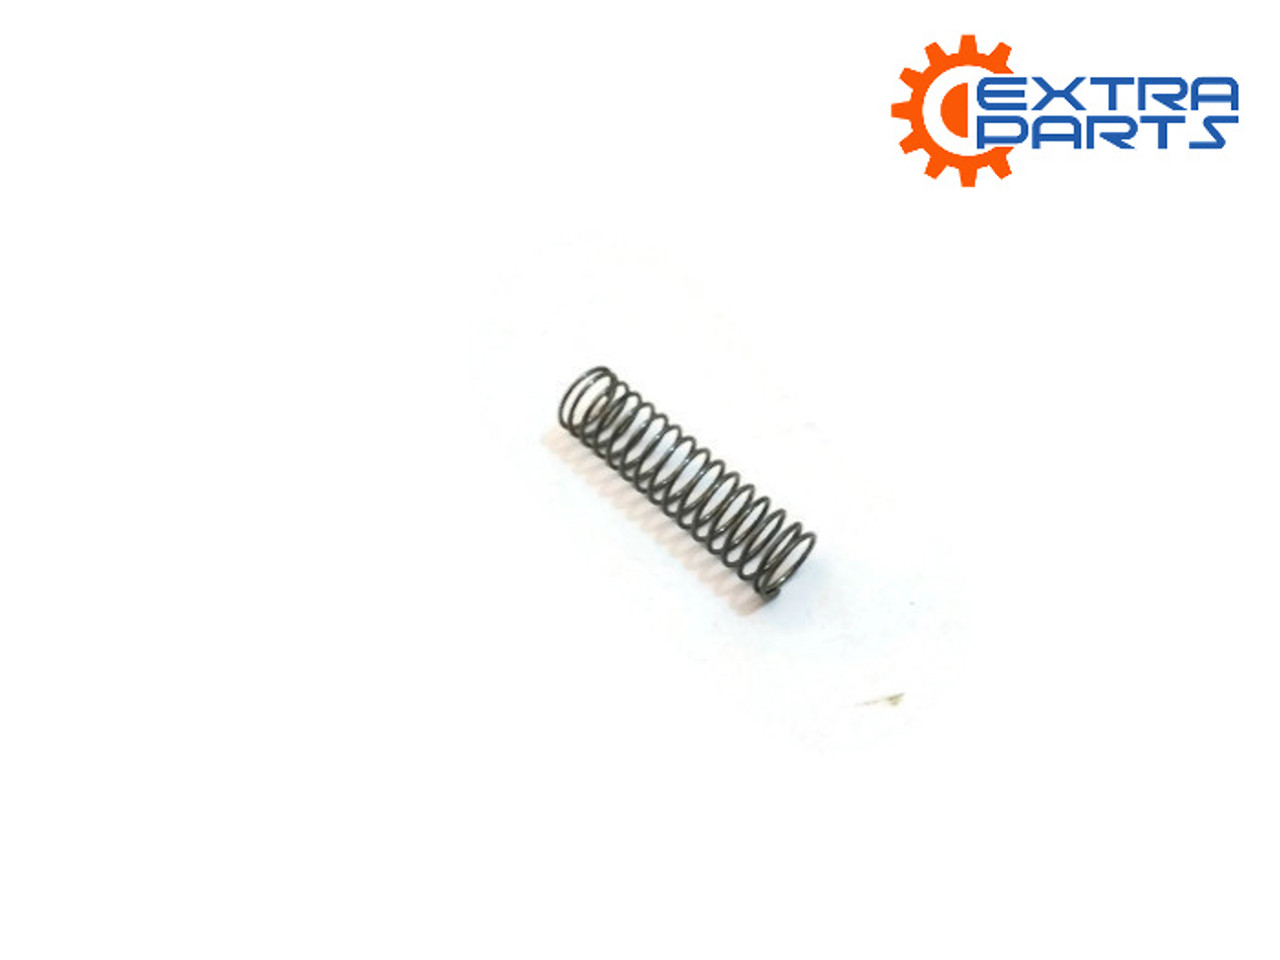 BROTHER SEPARATION PAD PAPER FEED ROLLER SPRING LY2208001 LY2207001 LY2093001